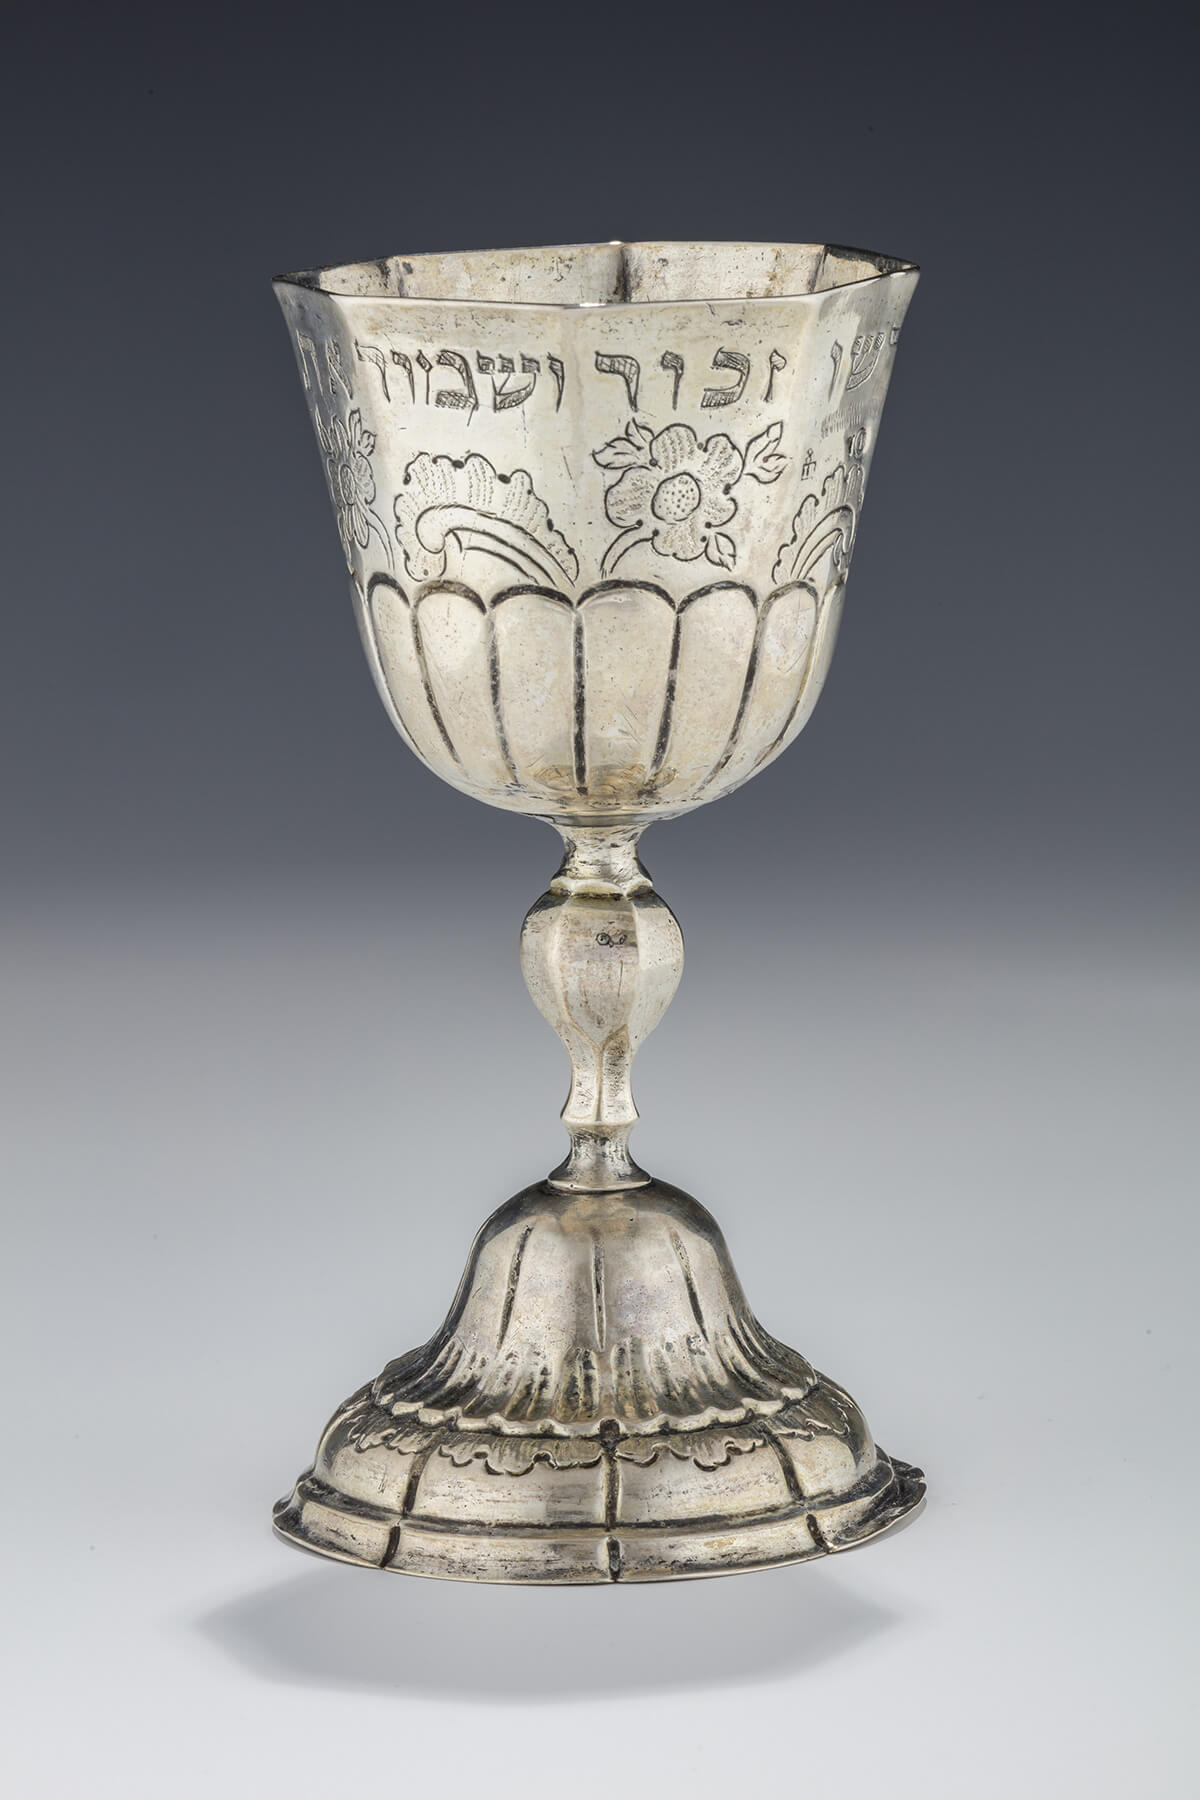 115. A Large Silver Kiddush Goblet by J. Rimonim